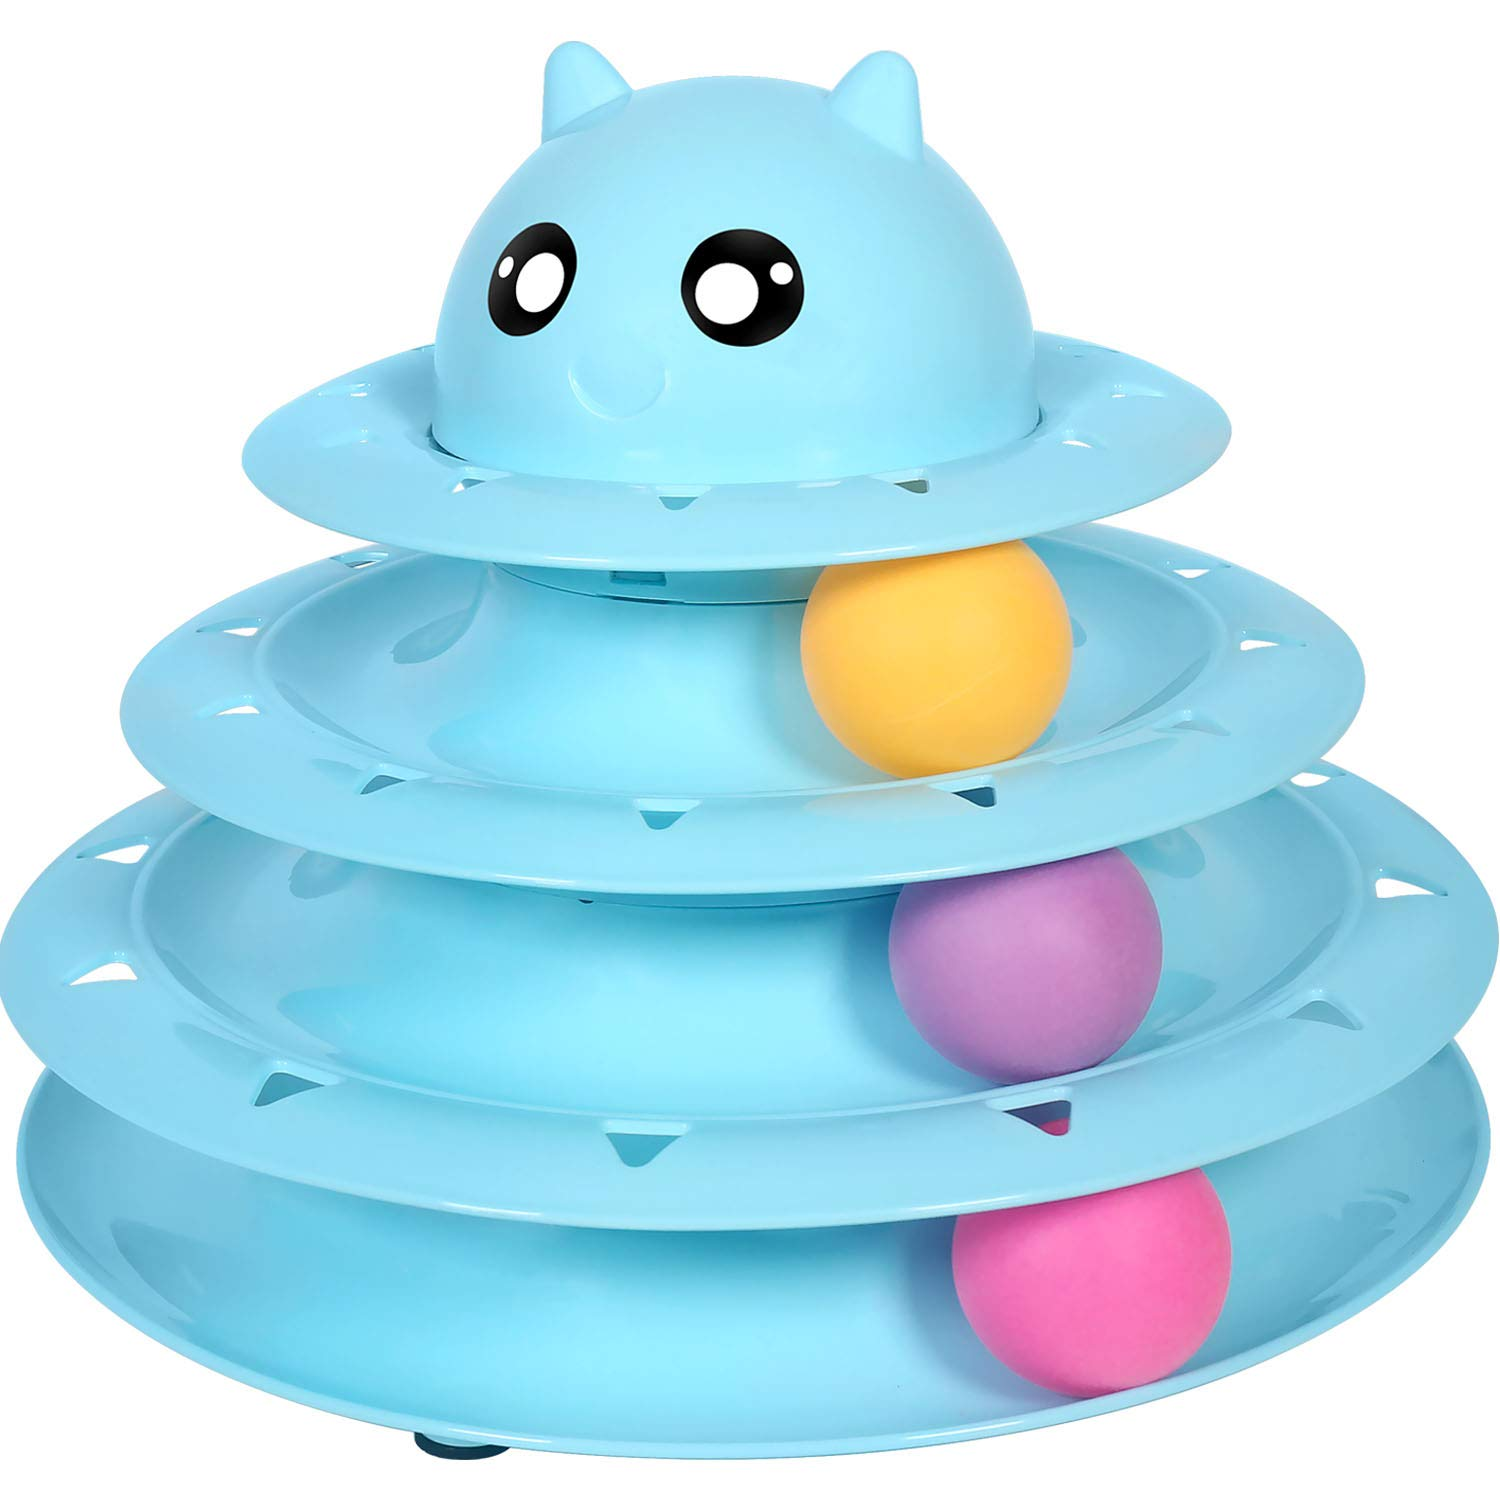 UPSKY Cat Toy Roller Cat Toys 3 Level Towers Tracks Roller with Three Colorful Ball Interactive Kitten Fun Mental Physical Exercise Puzzle Toys …